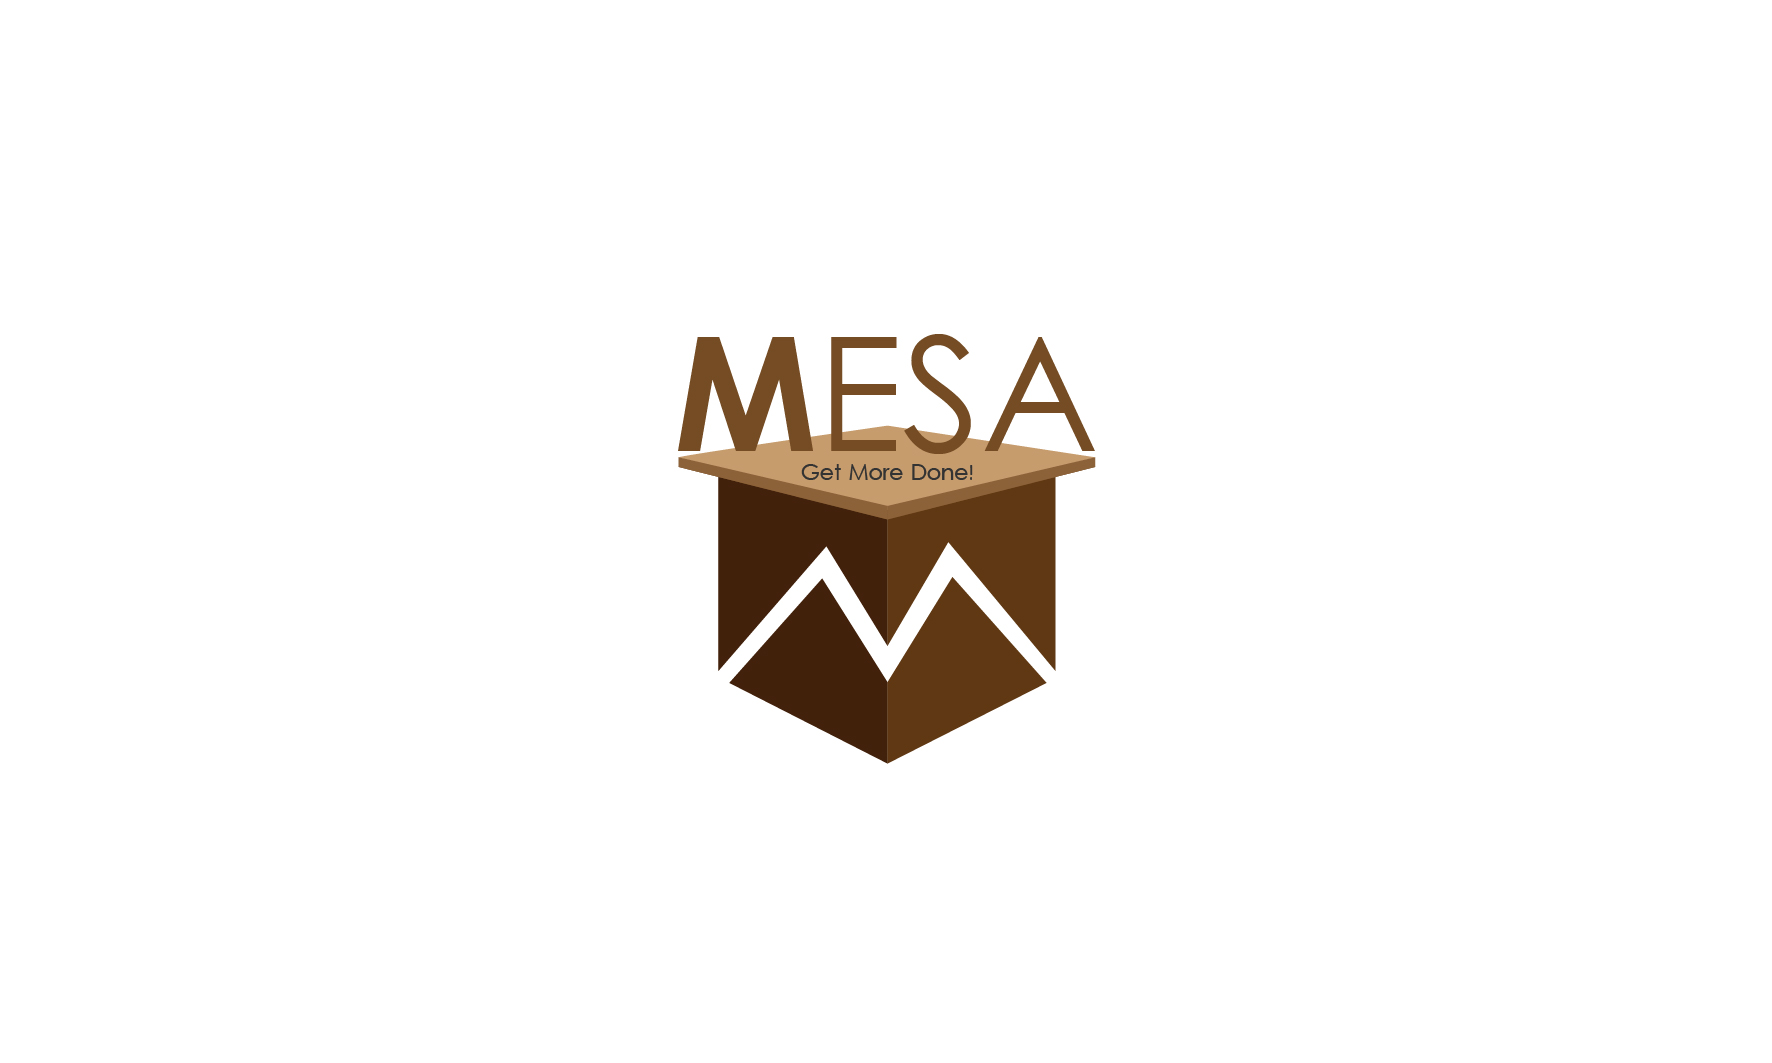 Logo Design by 3draw - Entry No. 155 in the Logo Design Contest Logo Design for Mesa.